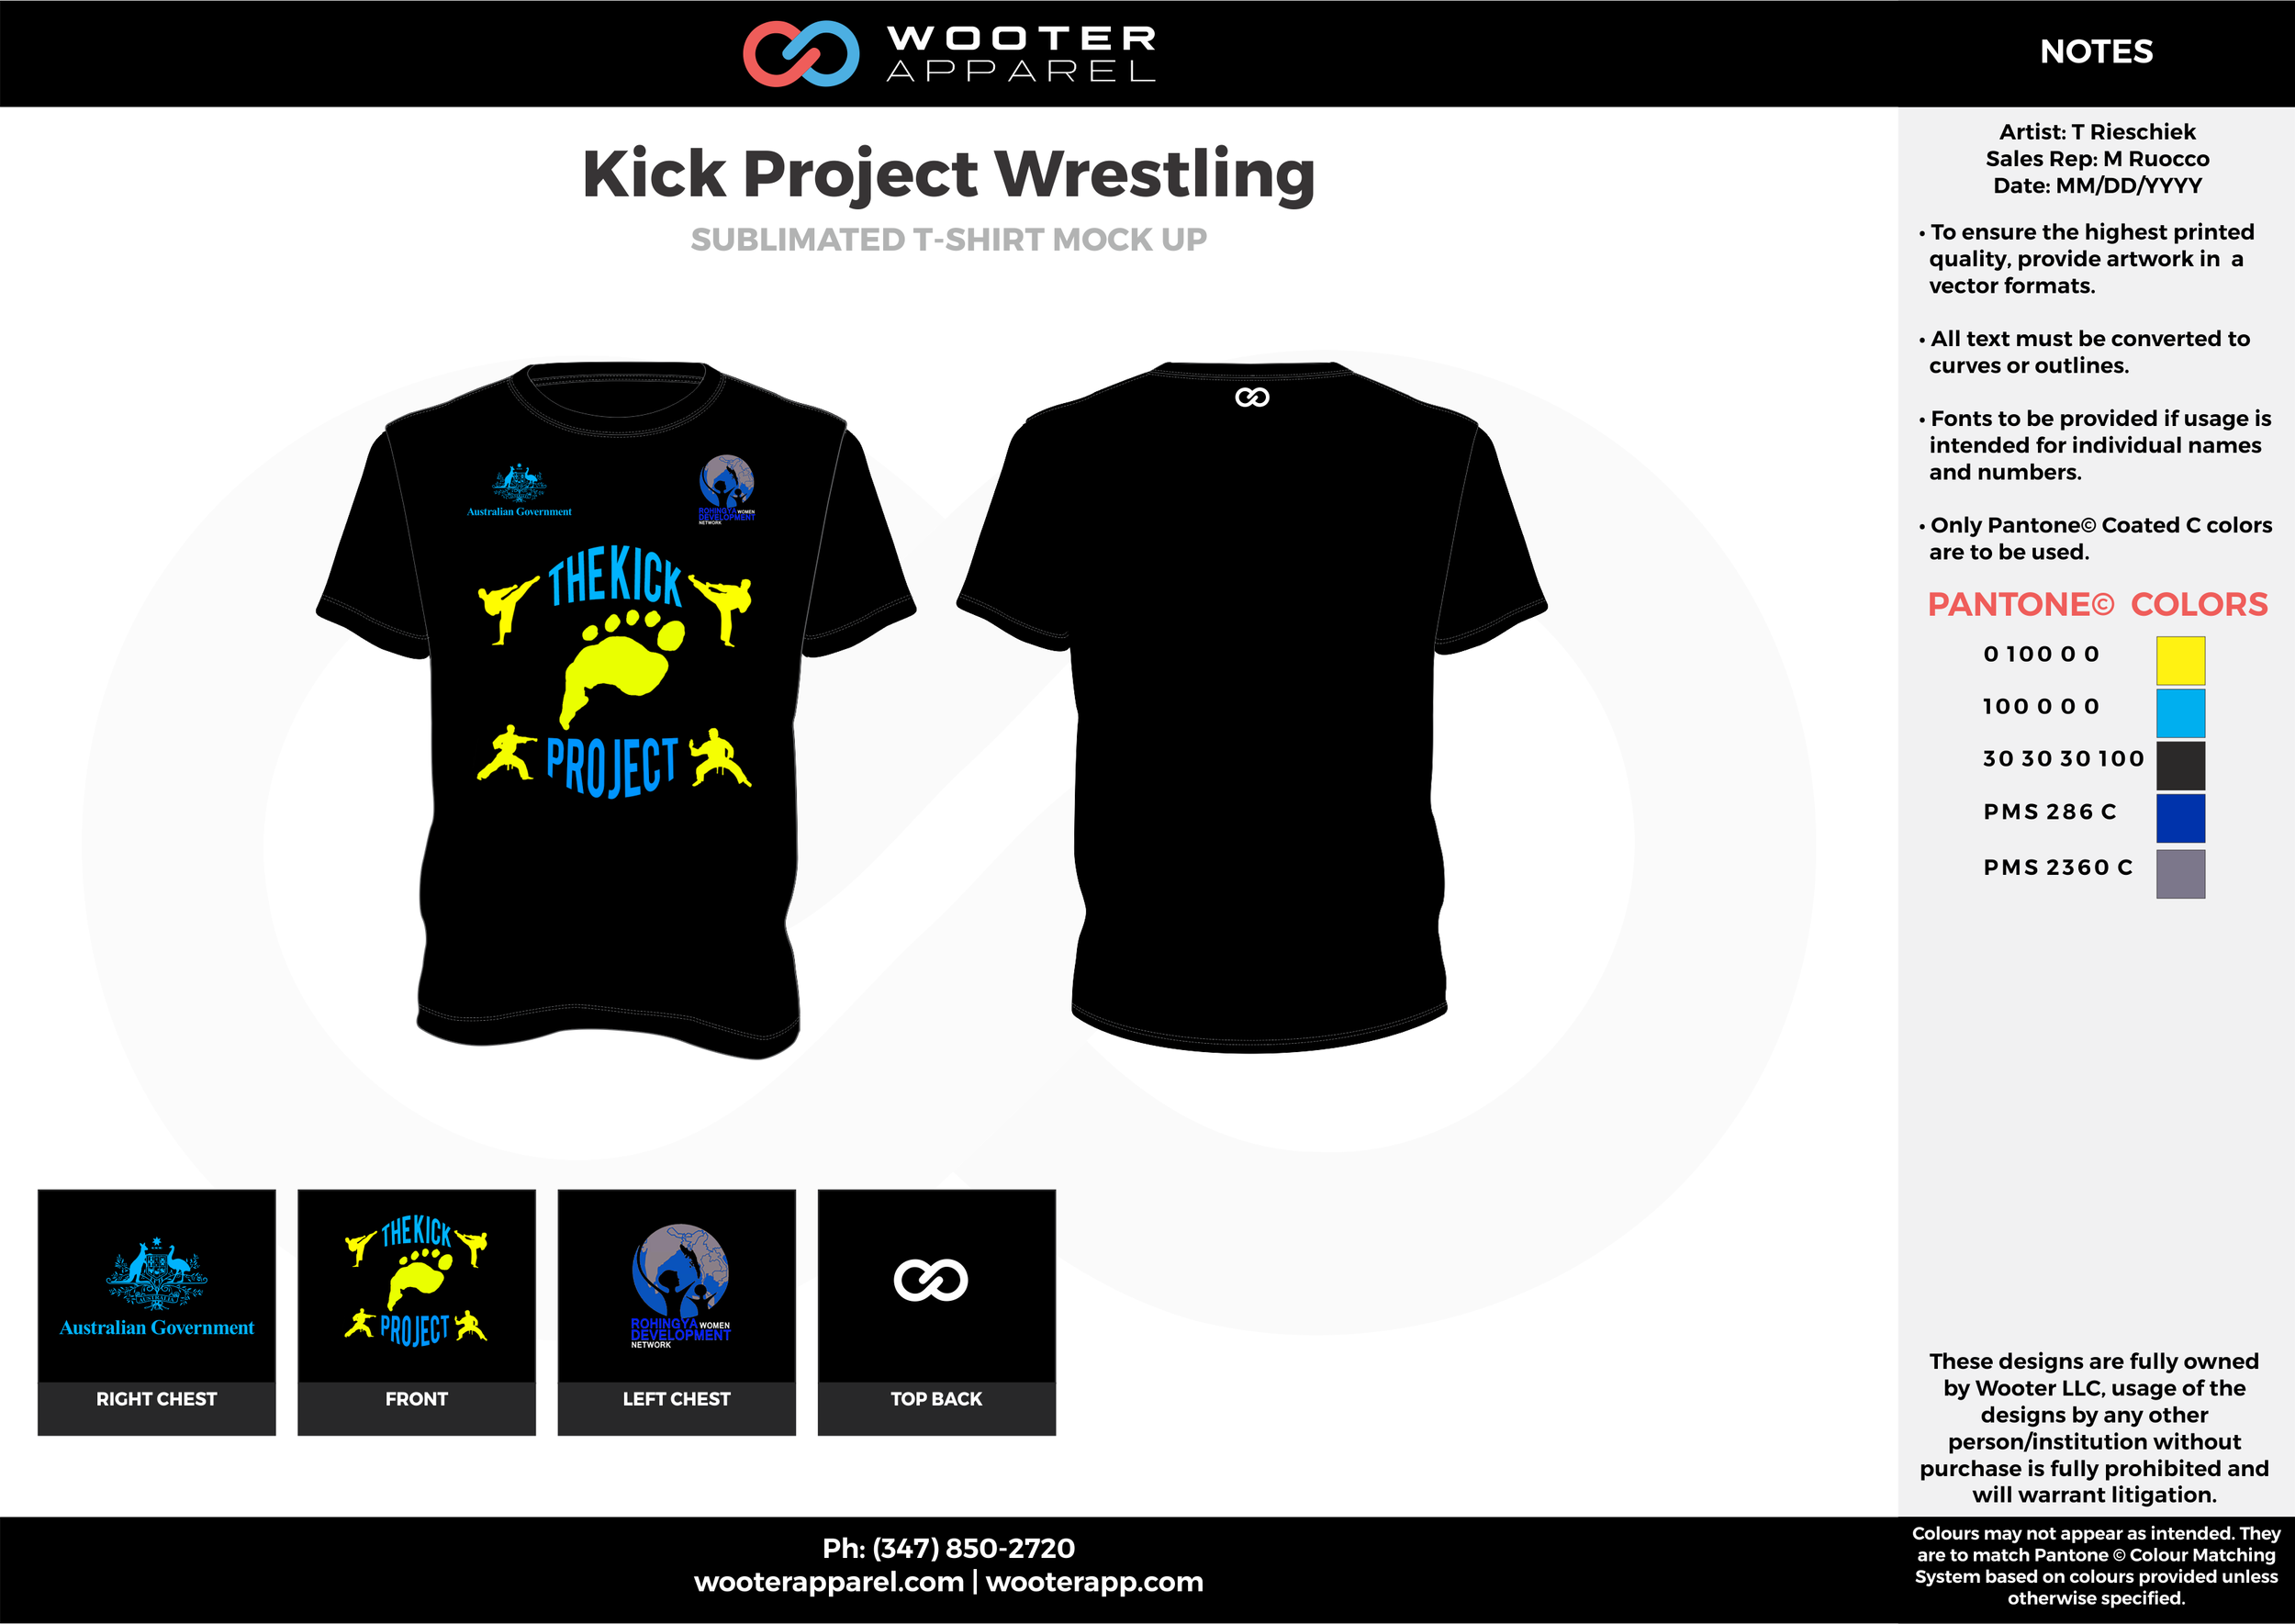 KICK PROJECT Black Yellow Blue Sublimated Wrestling T-Shirt